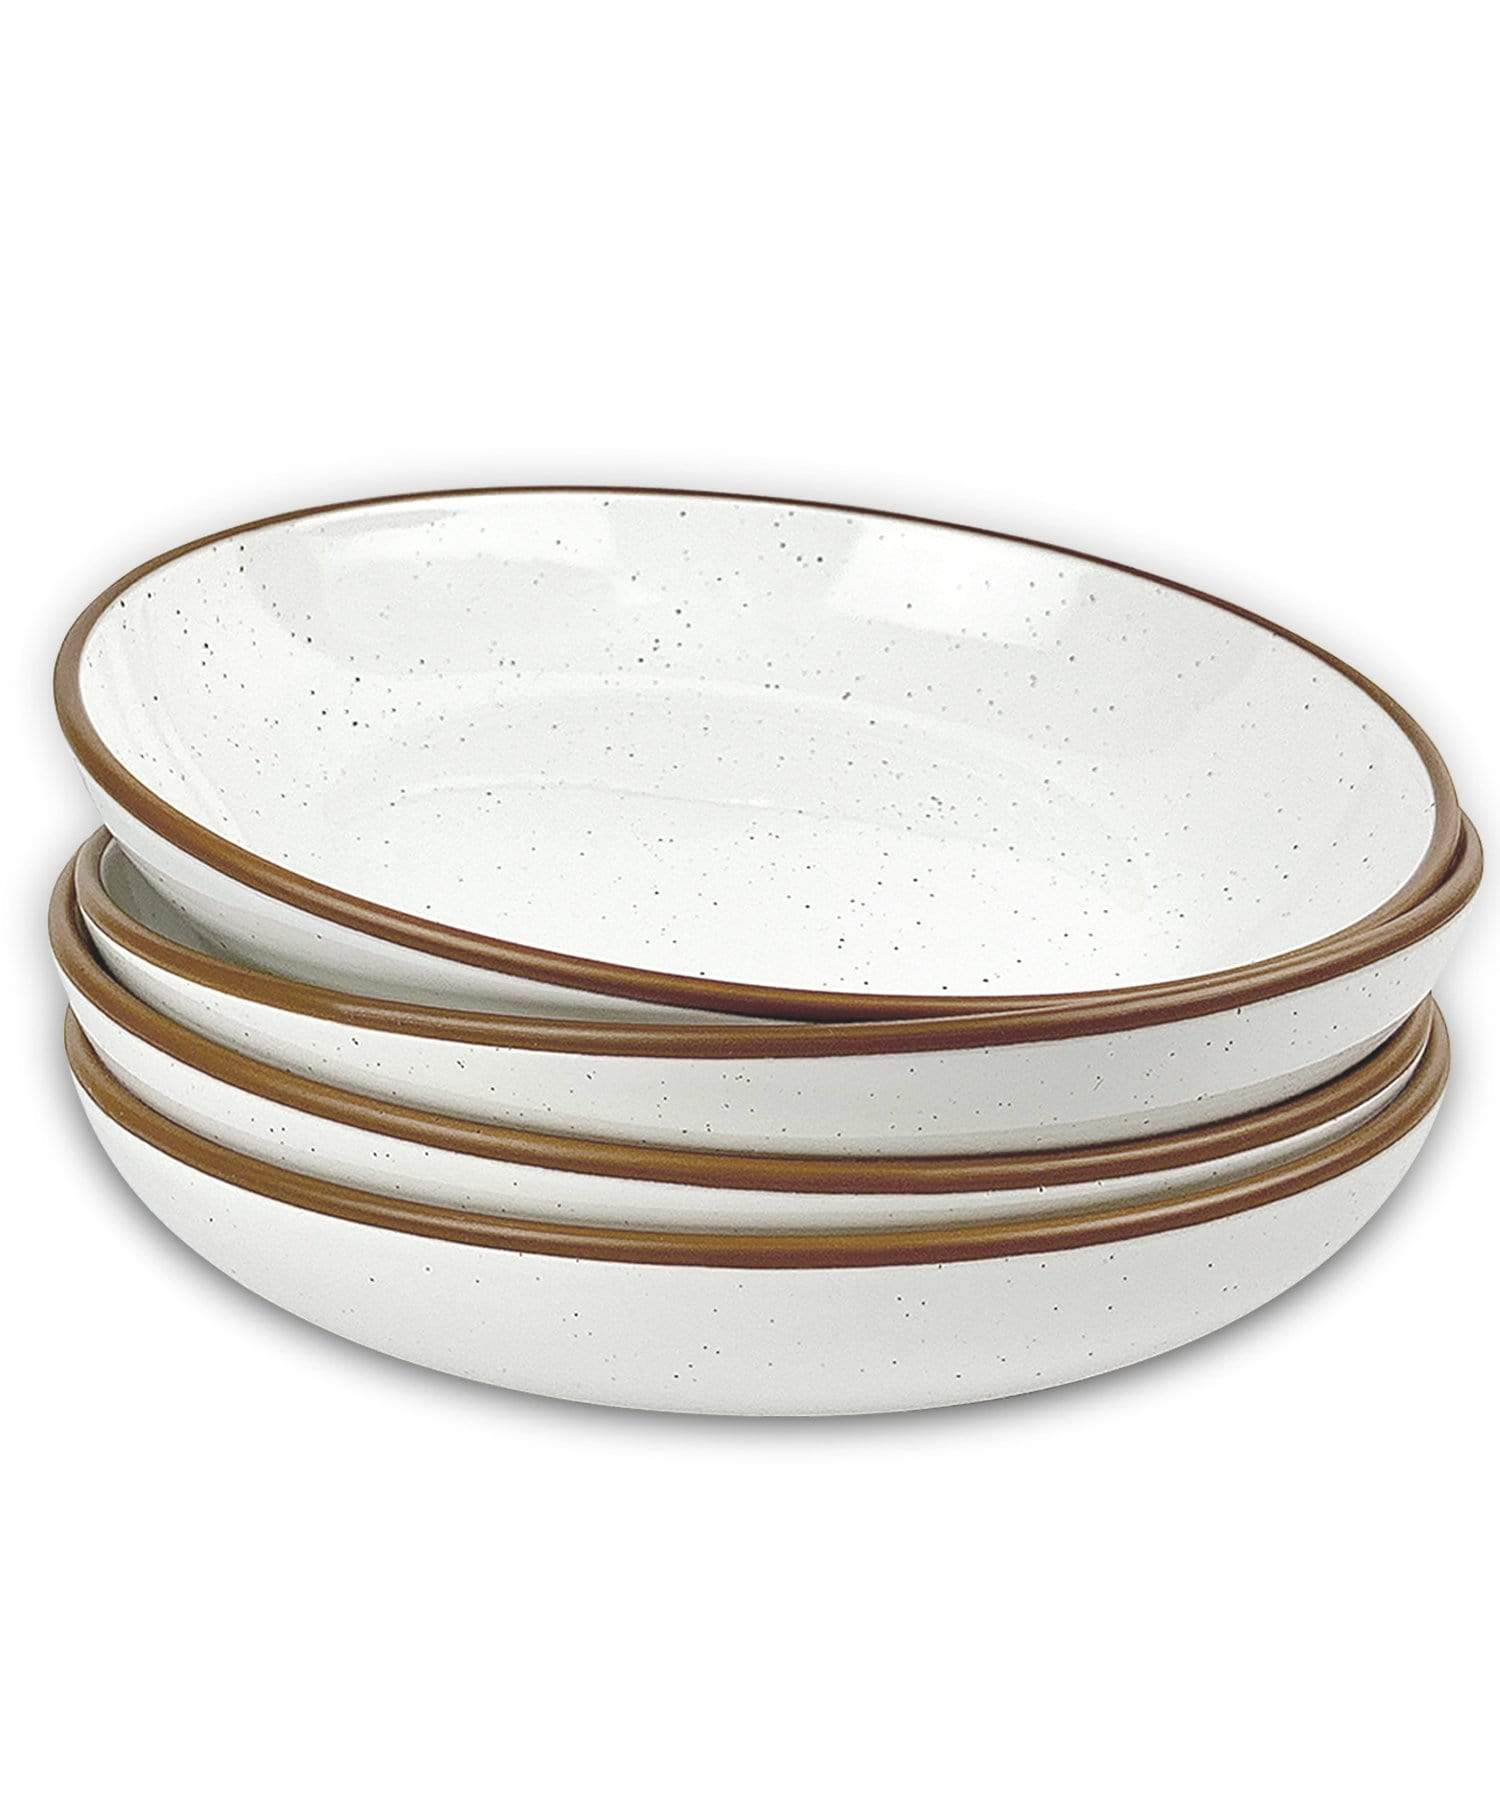 pasta bowls with brown rim and speckles in vanilla white